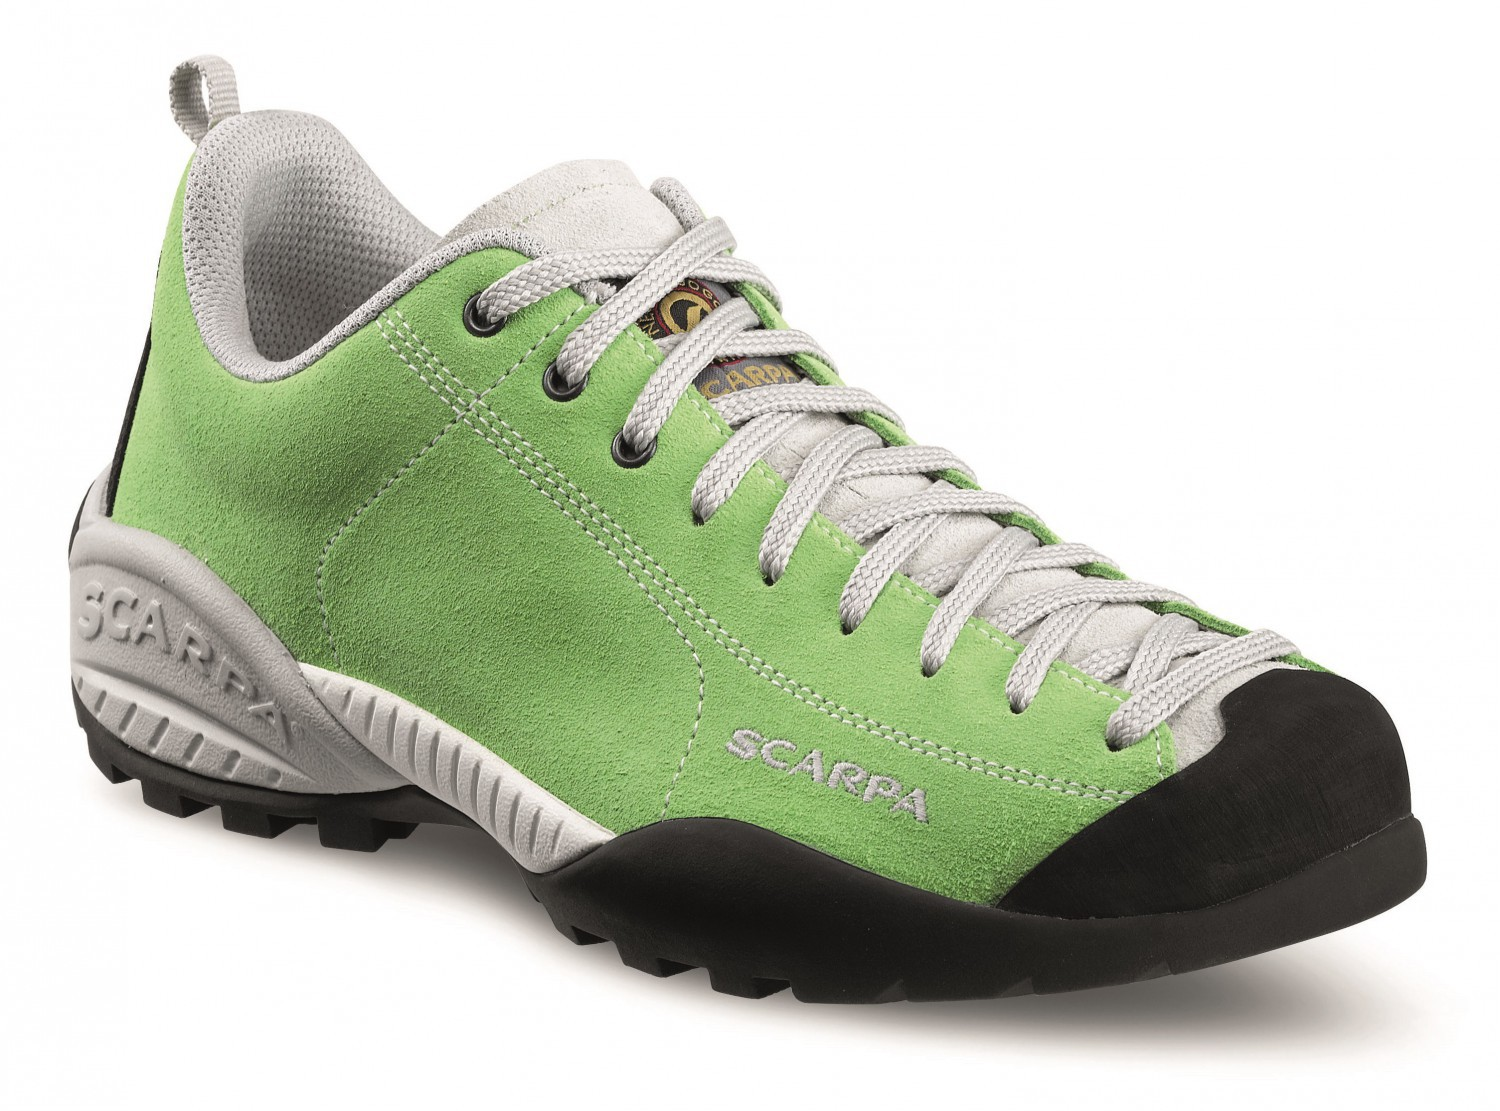 Scarpa - Mojito Voltage - Approach Shoes - 39